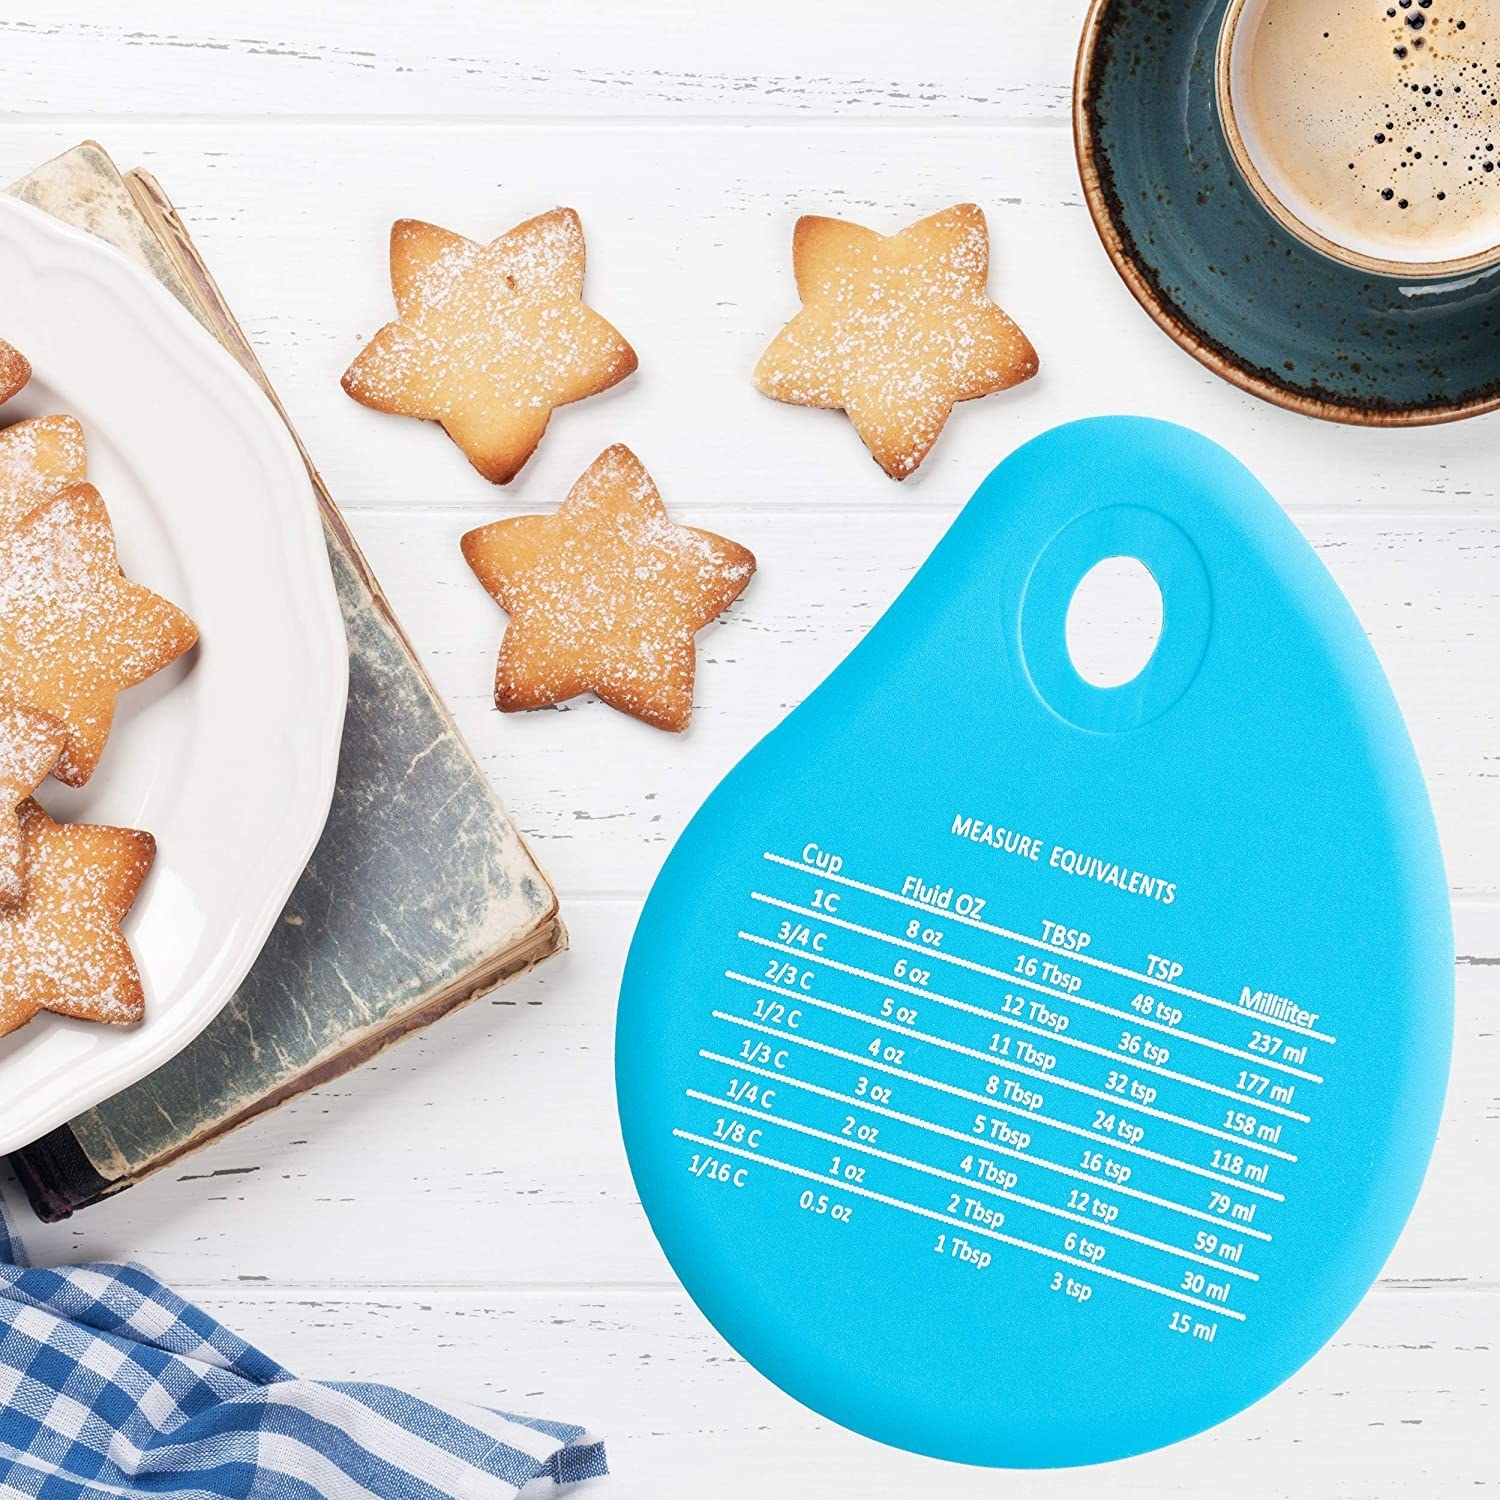 A silicone spatula next to star-shaped sugar cookies